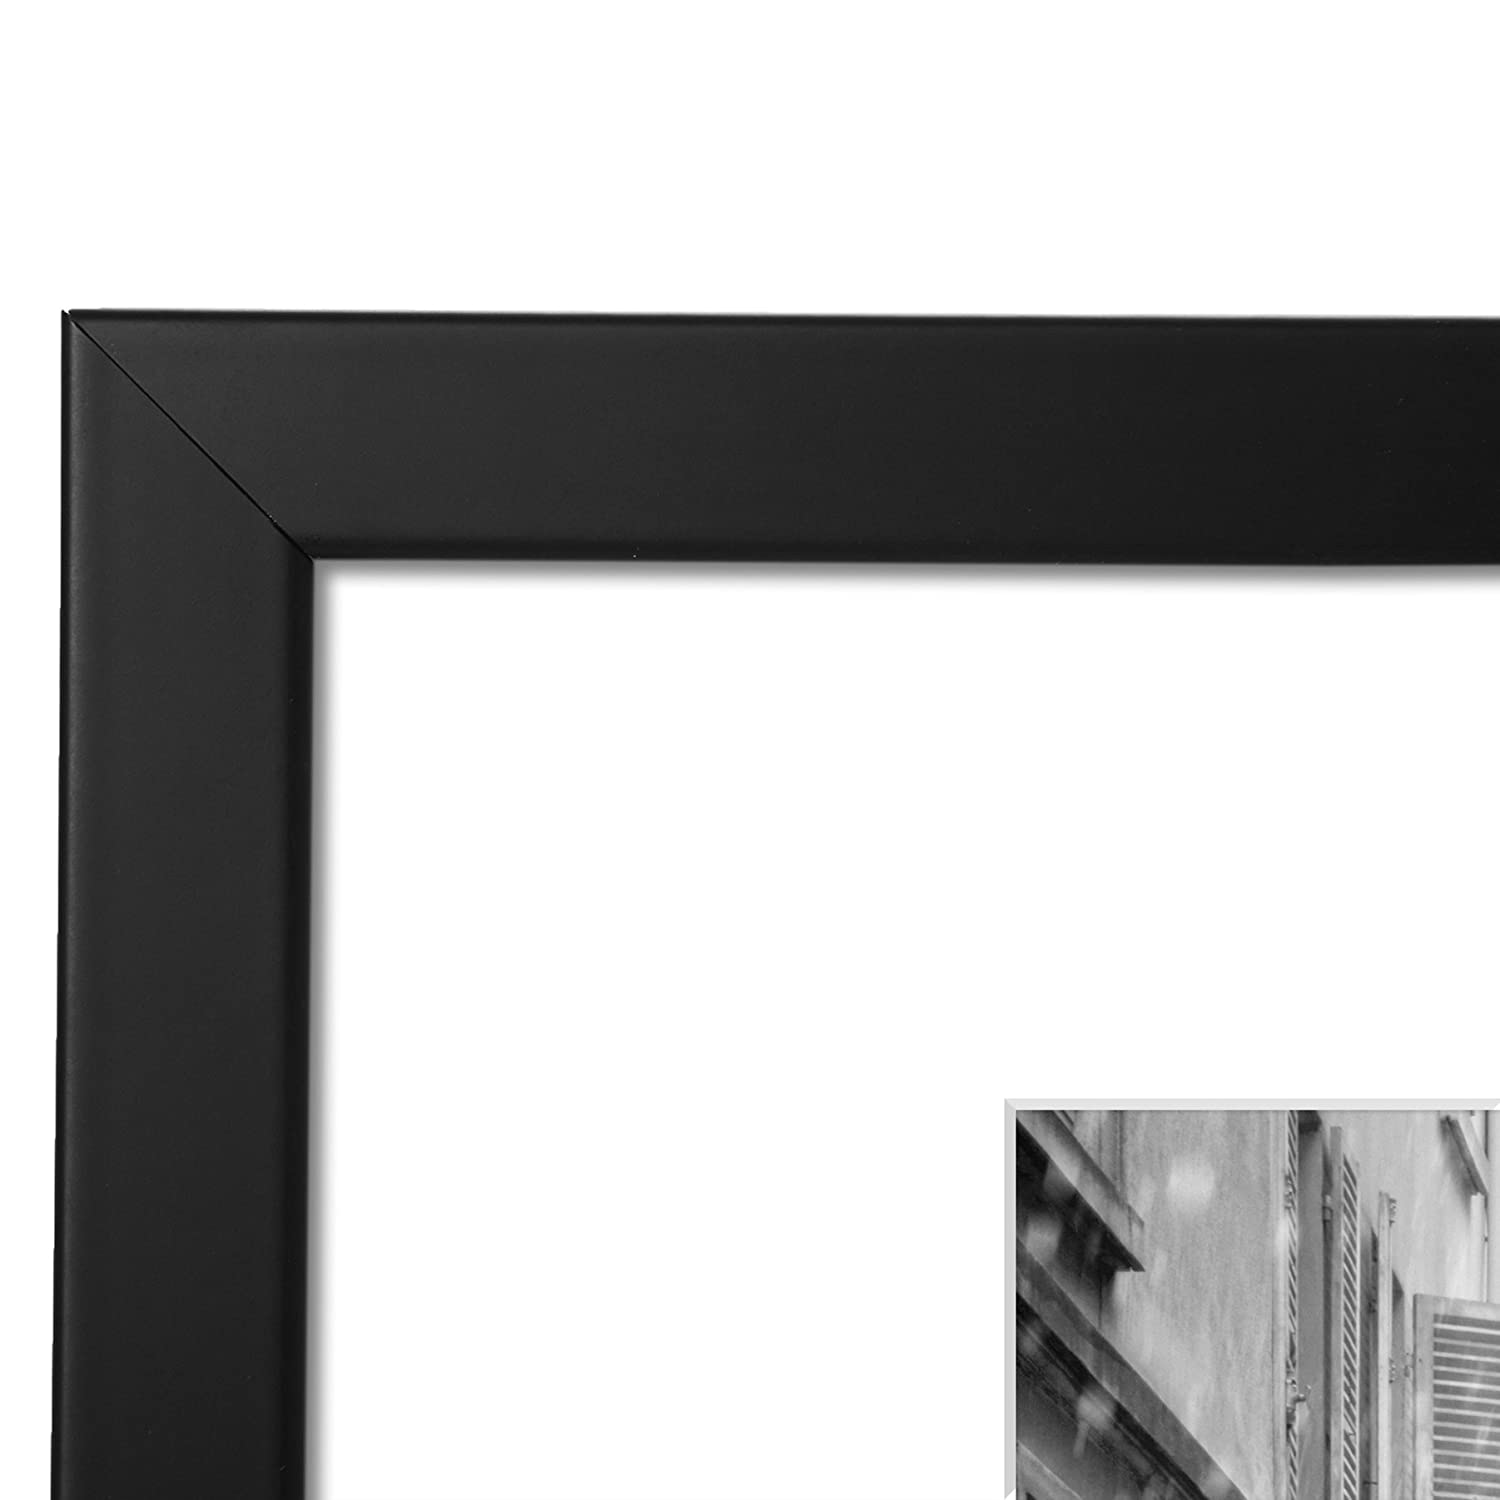 Amazon 11x14 black picture frame made to display pictures amazon 11x14 black picture frame made to display pictures 8x10 with mat or 11x14 without mat wide molding wall mounting material included jeuxipadfo Images